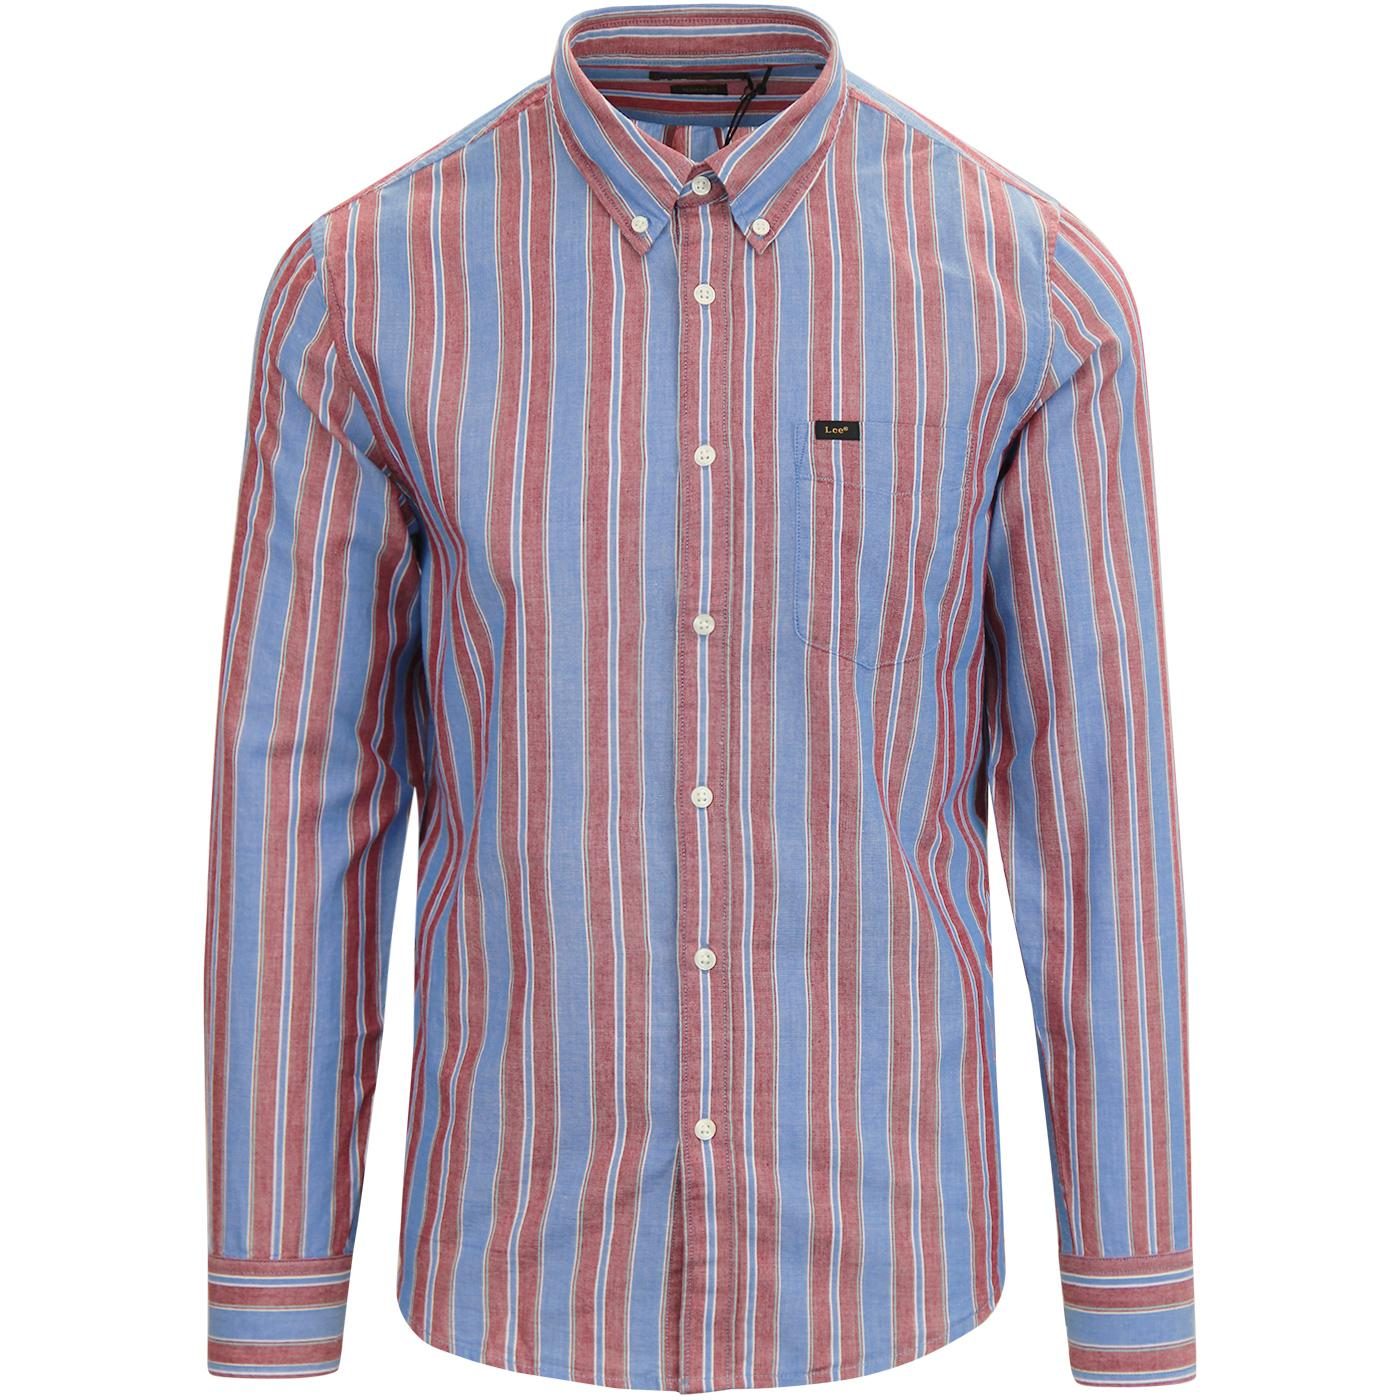 LEE Retro Mod Button Down Multi Stripe Shirt (DB)